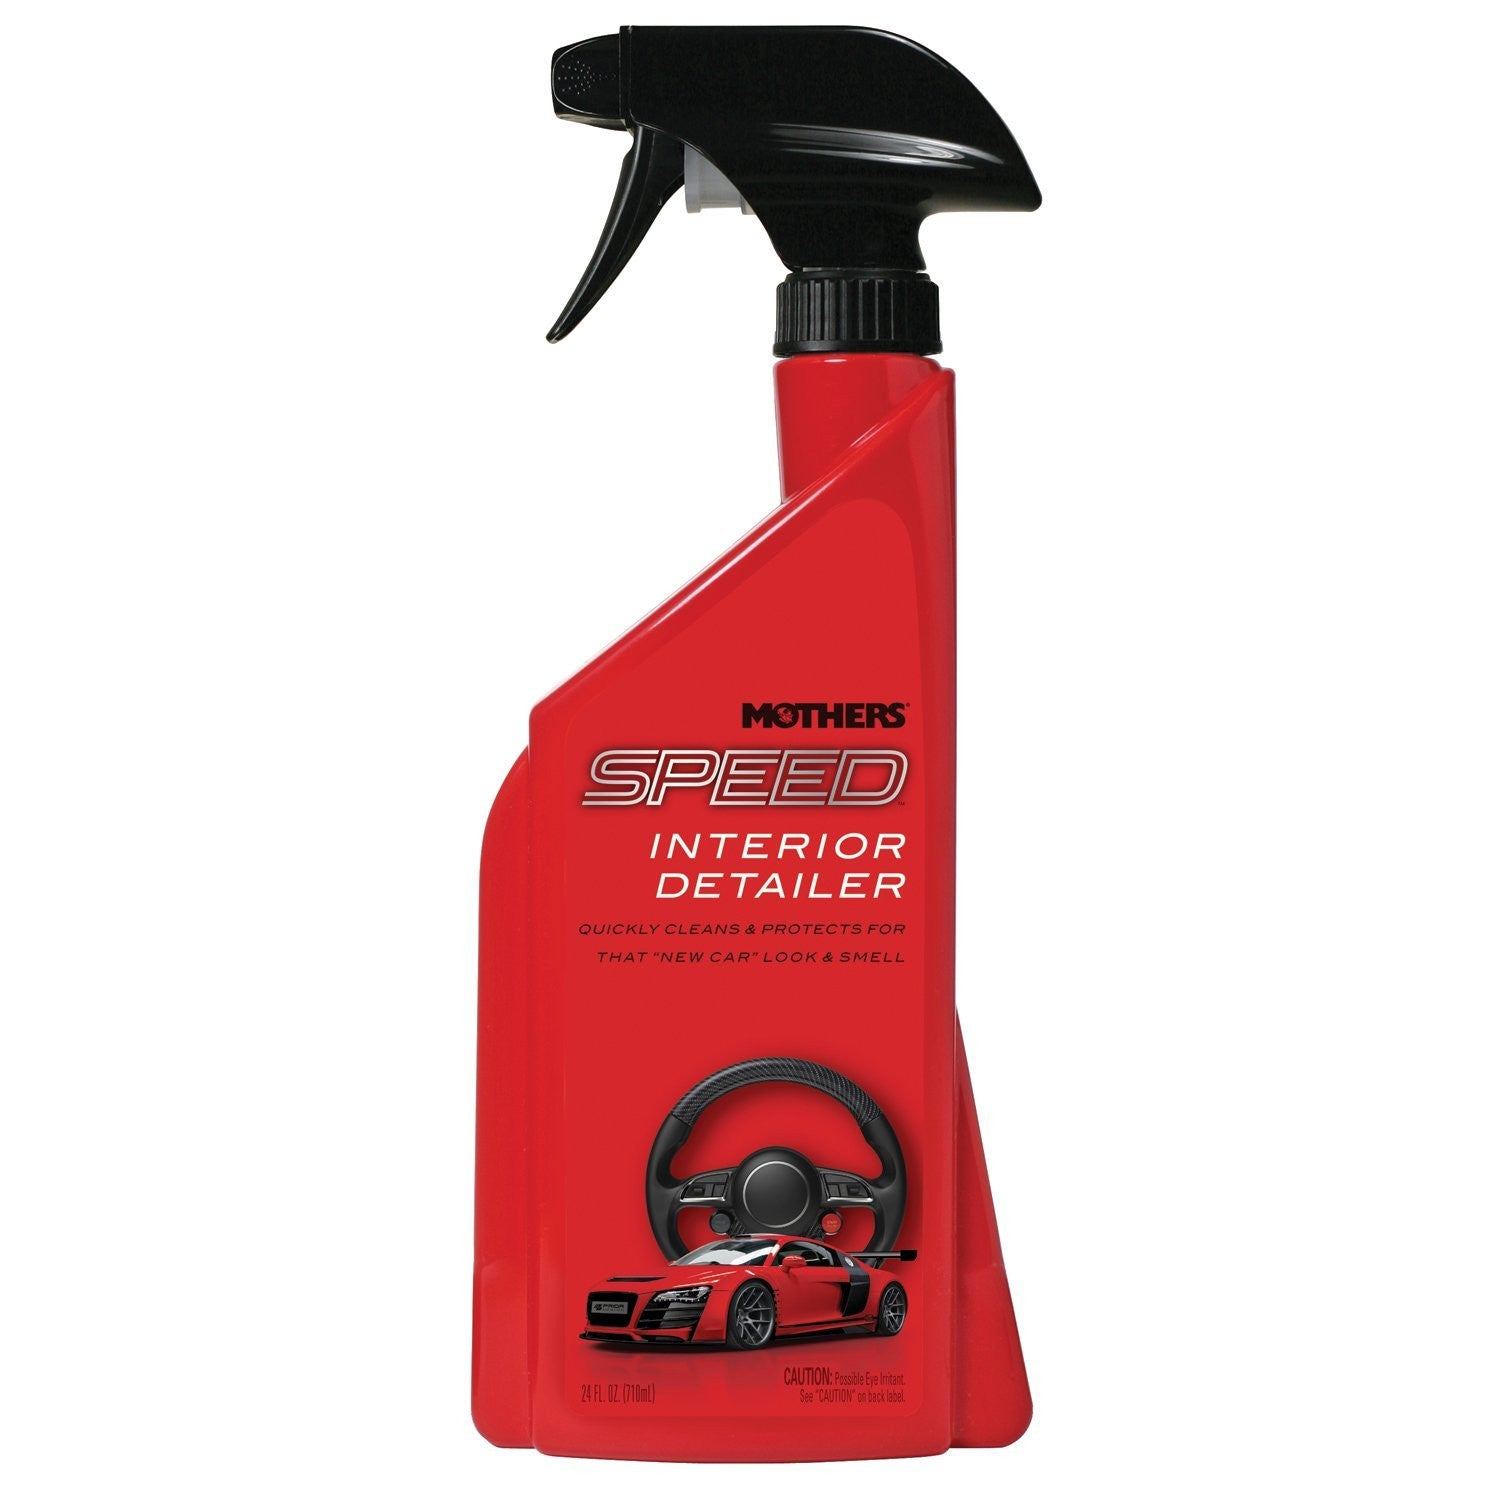 MOTHERS Speed Interior Detailer 24 oz